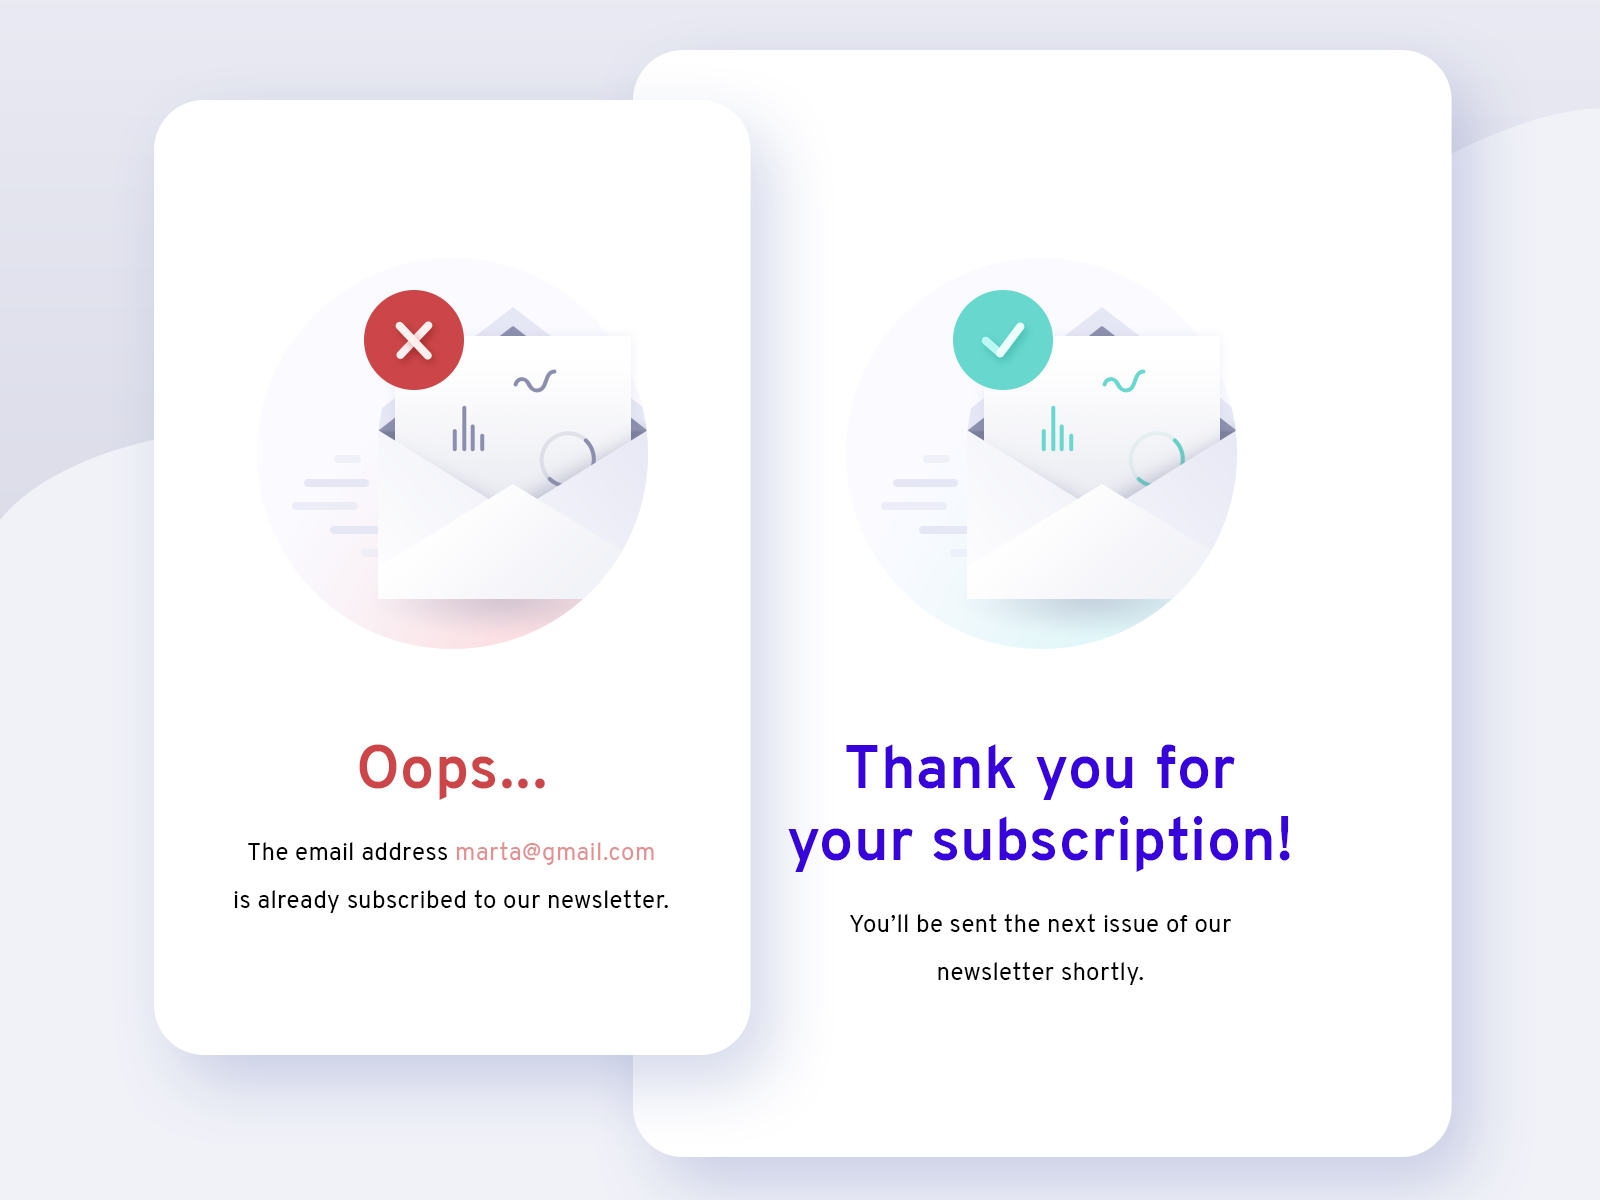 Newsletter Subscription Confirmation illustration newsletter oops thanks email confirmation subscription empty state